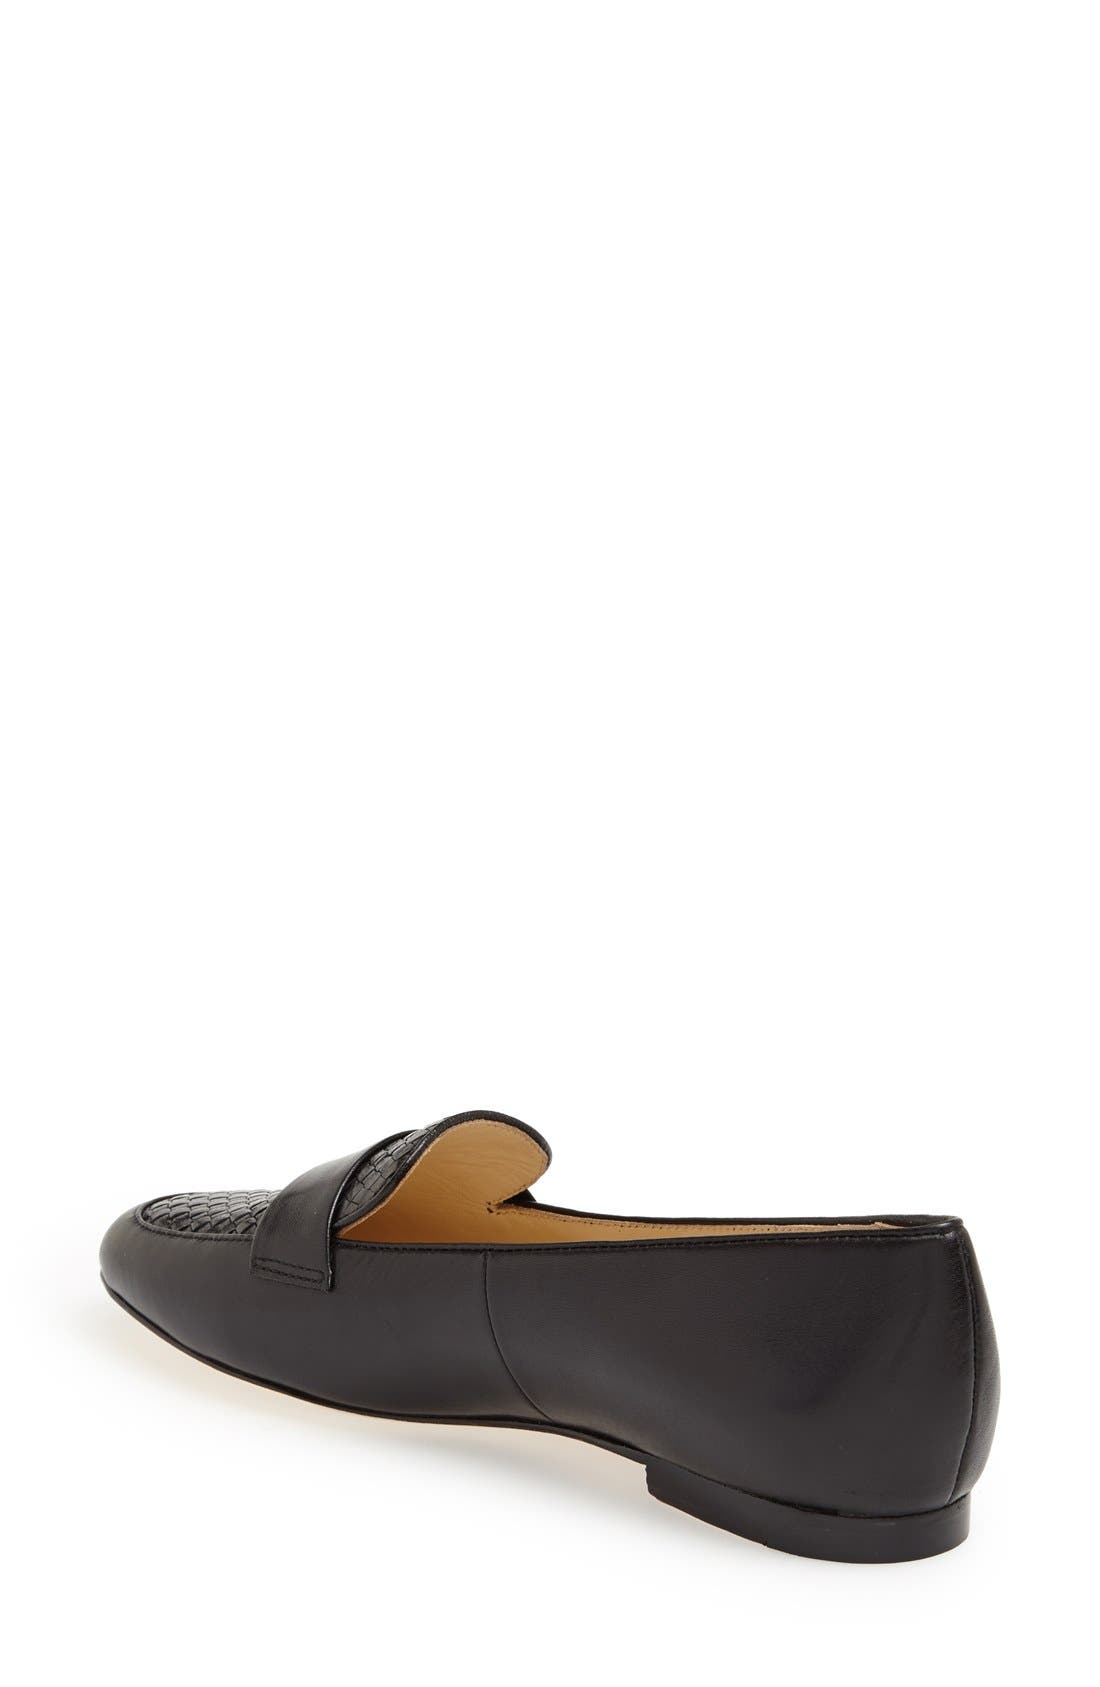 Alternate Image 4  - Cole Haan 'Dakota' Woven Leather Loafer (Women)